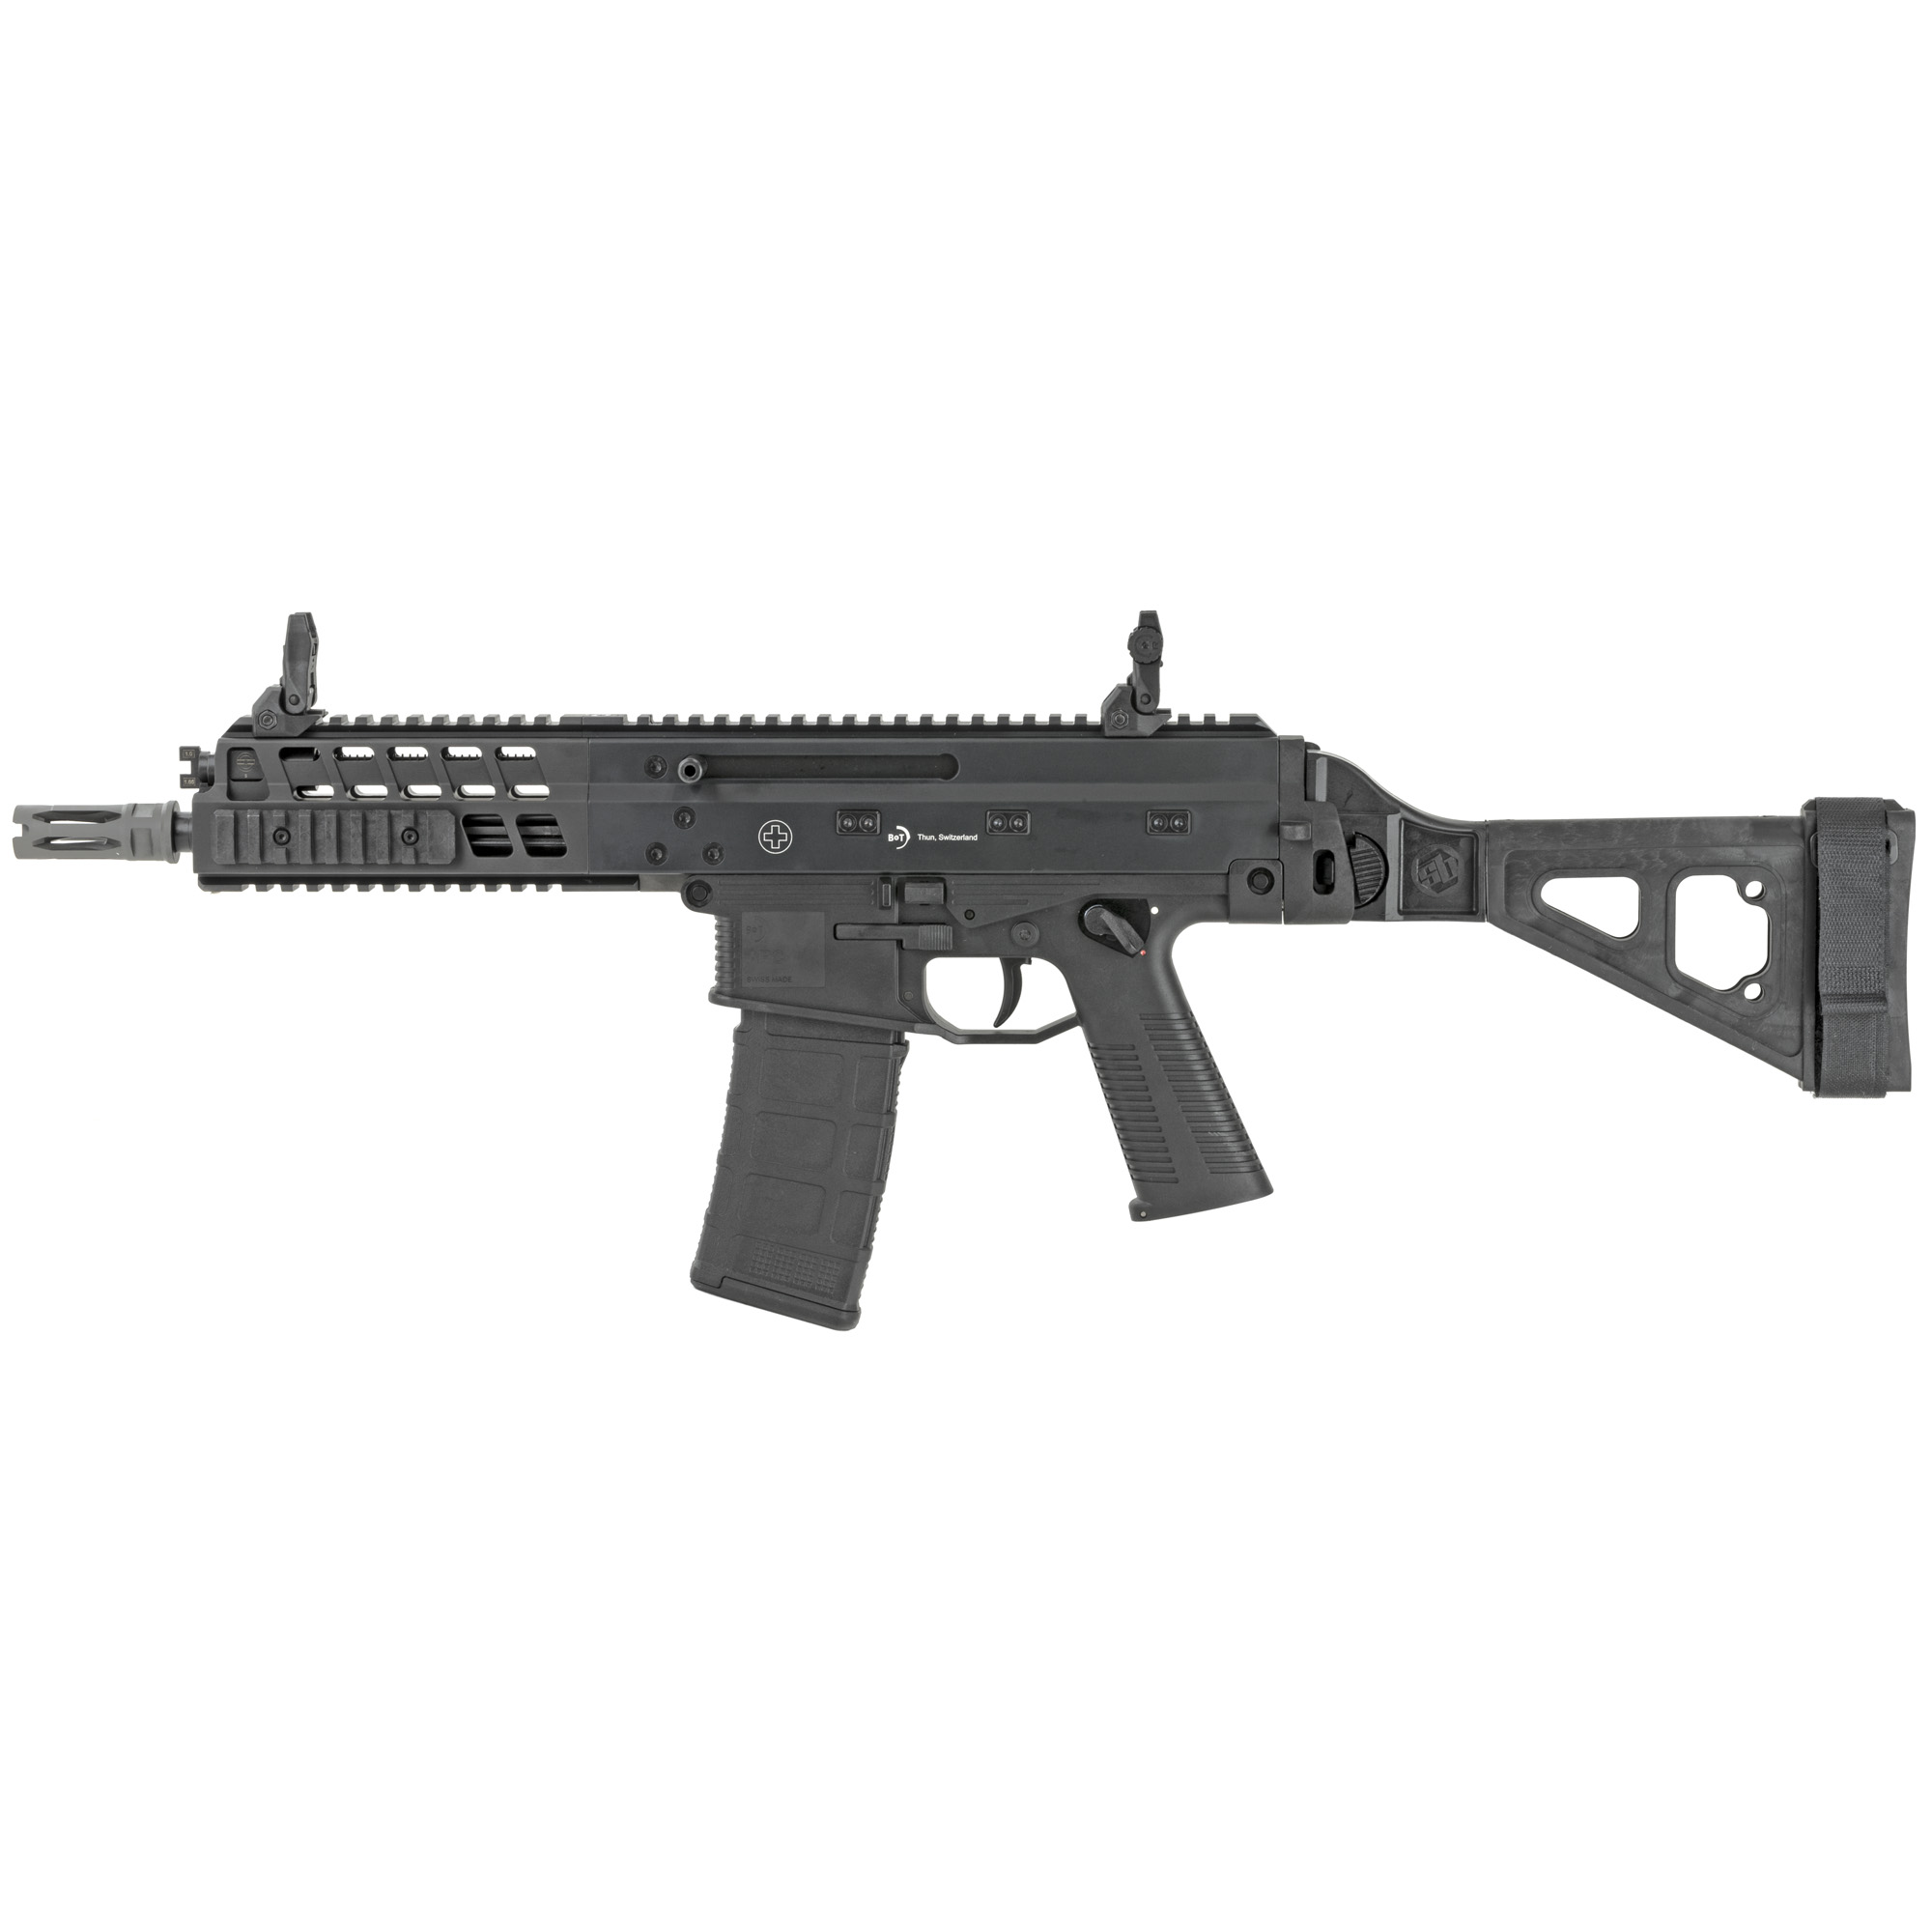 State of the art materials and manufacturing methods paired with Swiss Precision turn the APC223 into the perfect gun for defense as well as for plinking.